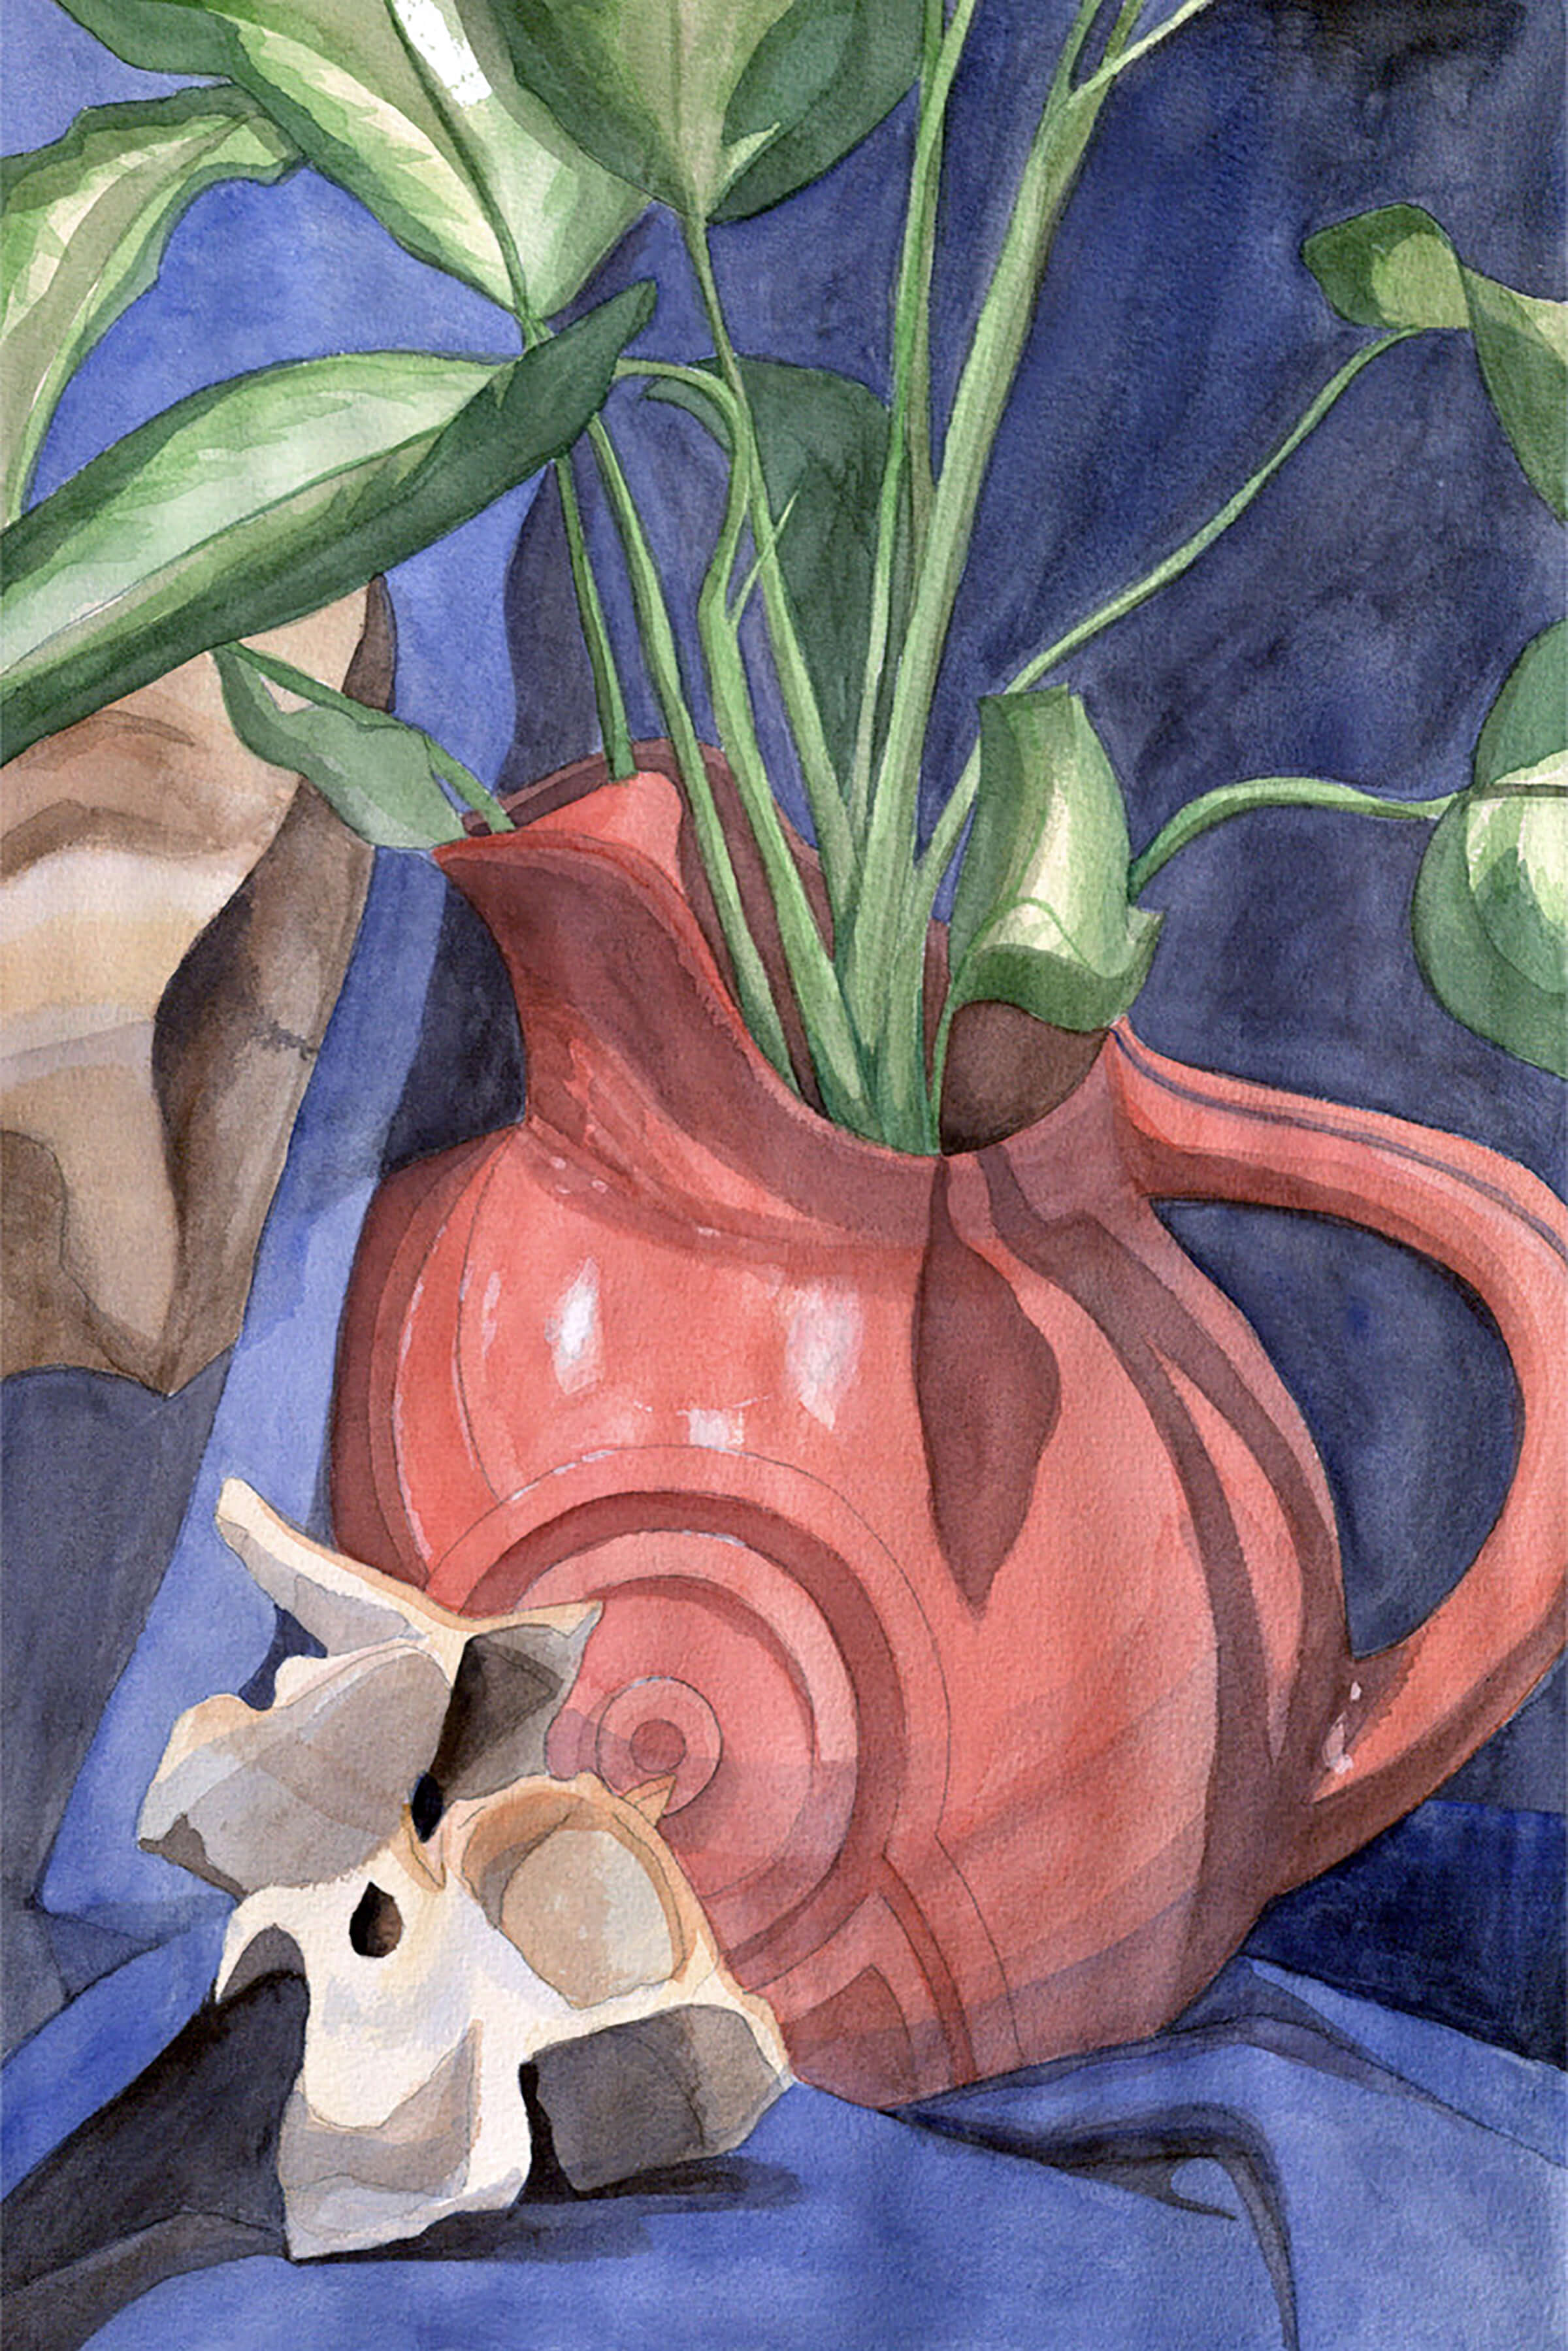 still-life traditional painting of a red pitcher filled with greenery against a blue draped background